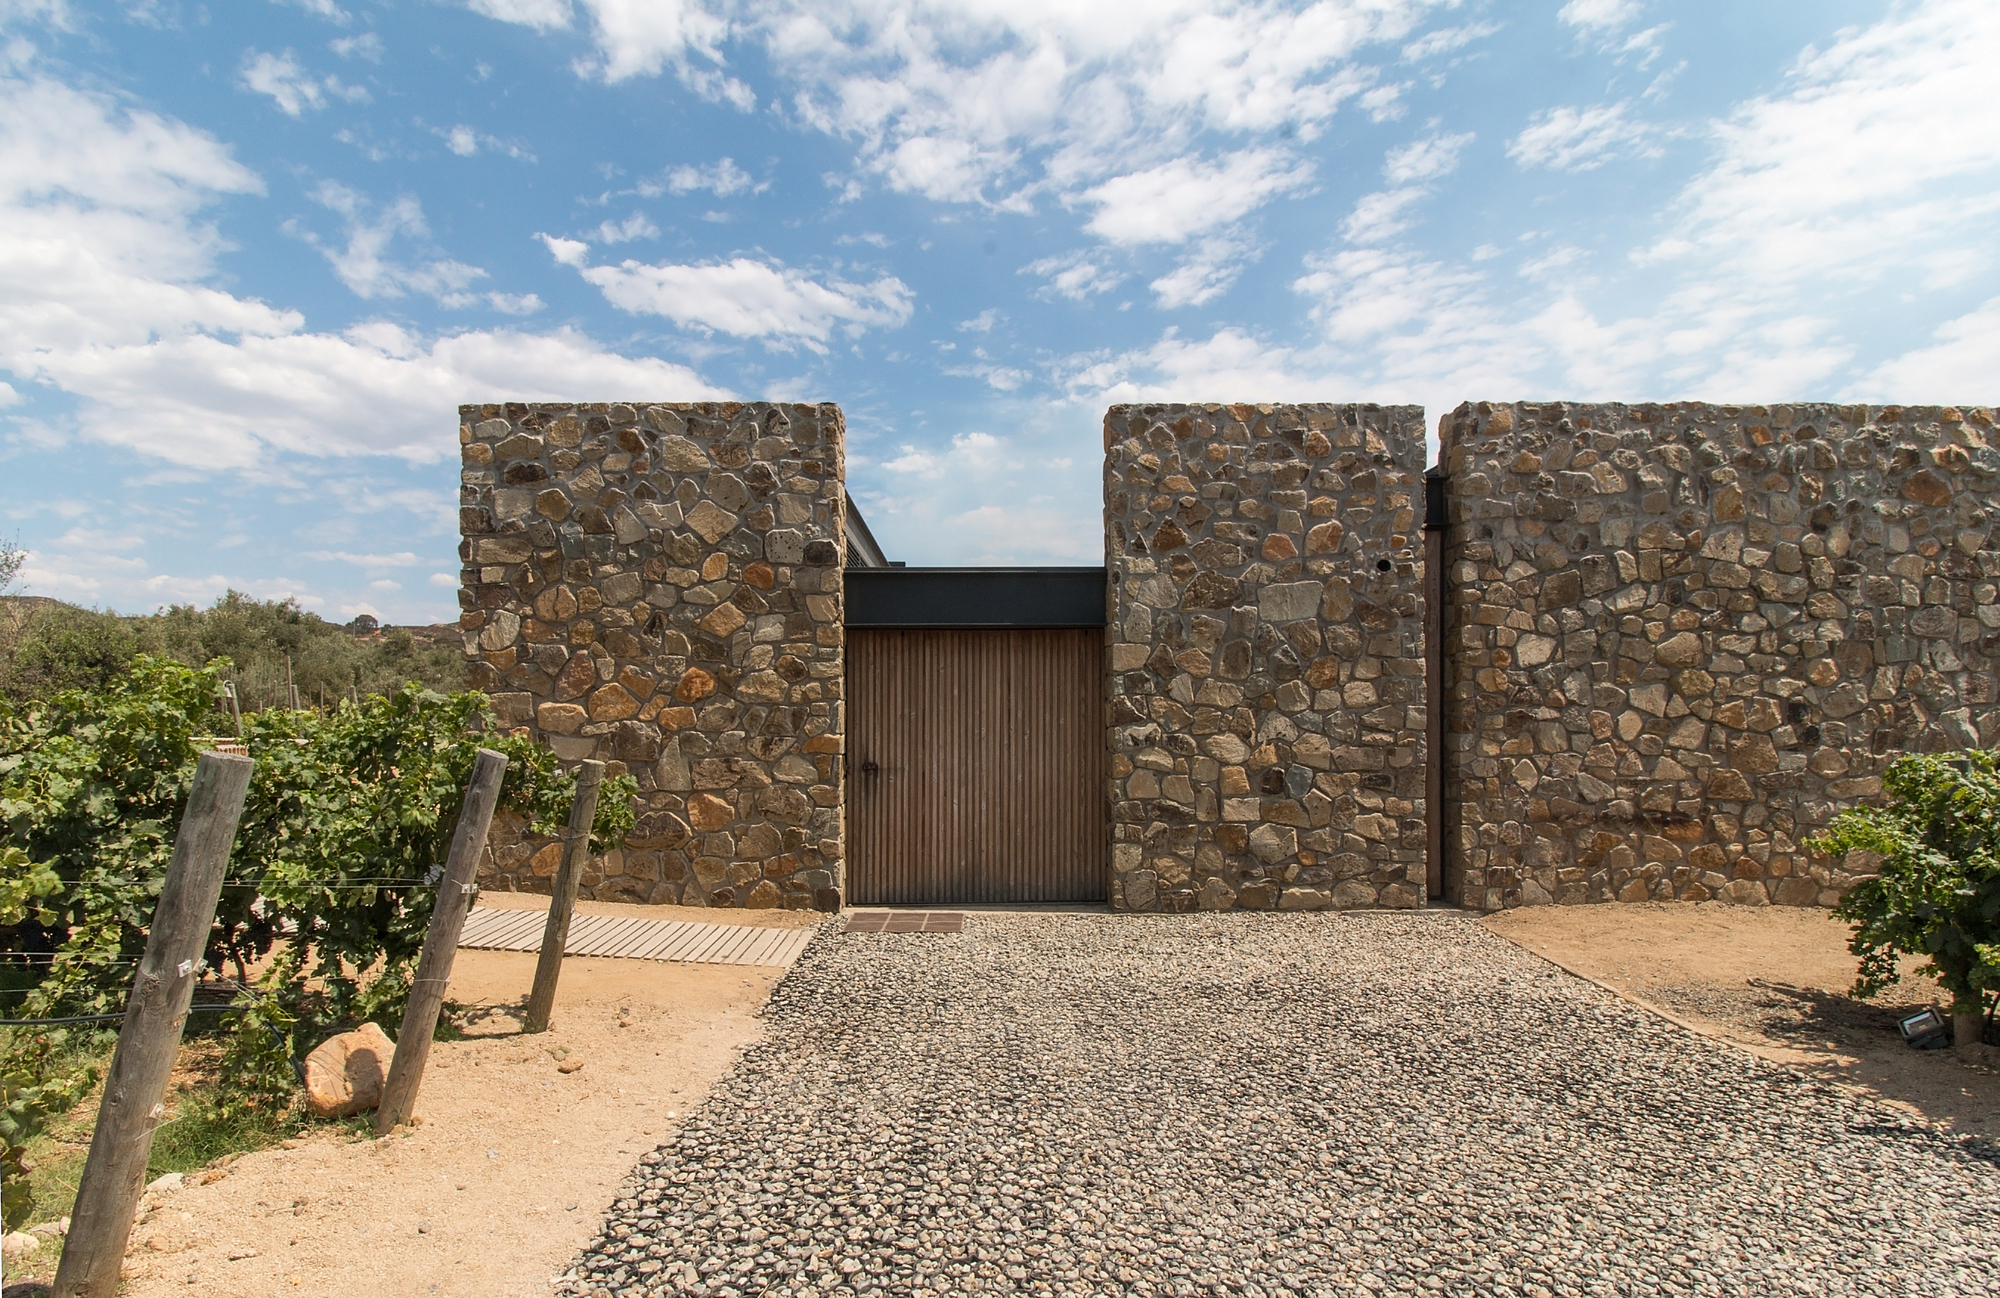 Architecture From Mexico ArchDaily - International architecture firms